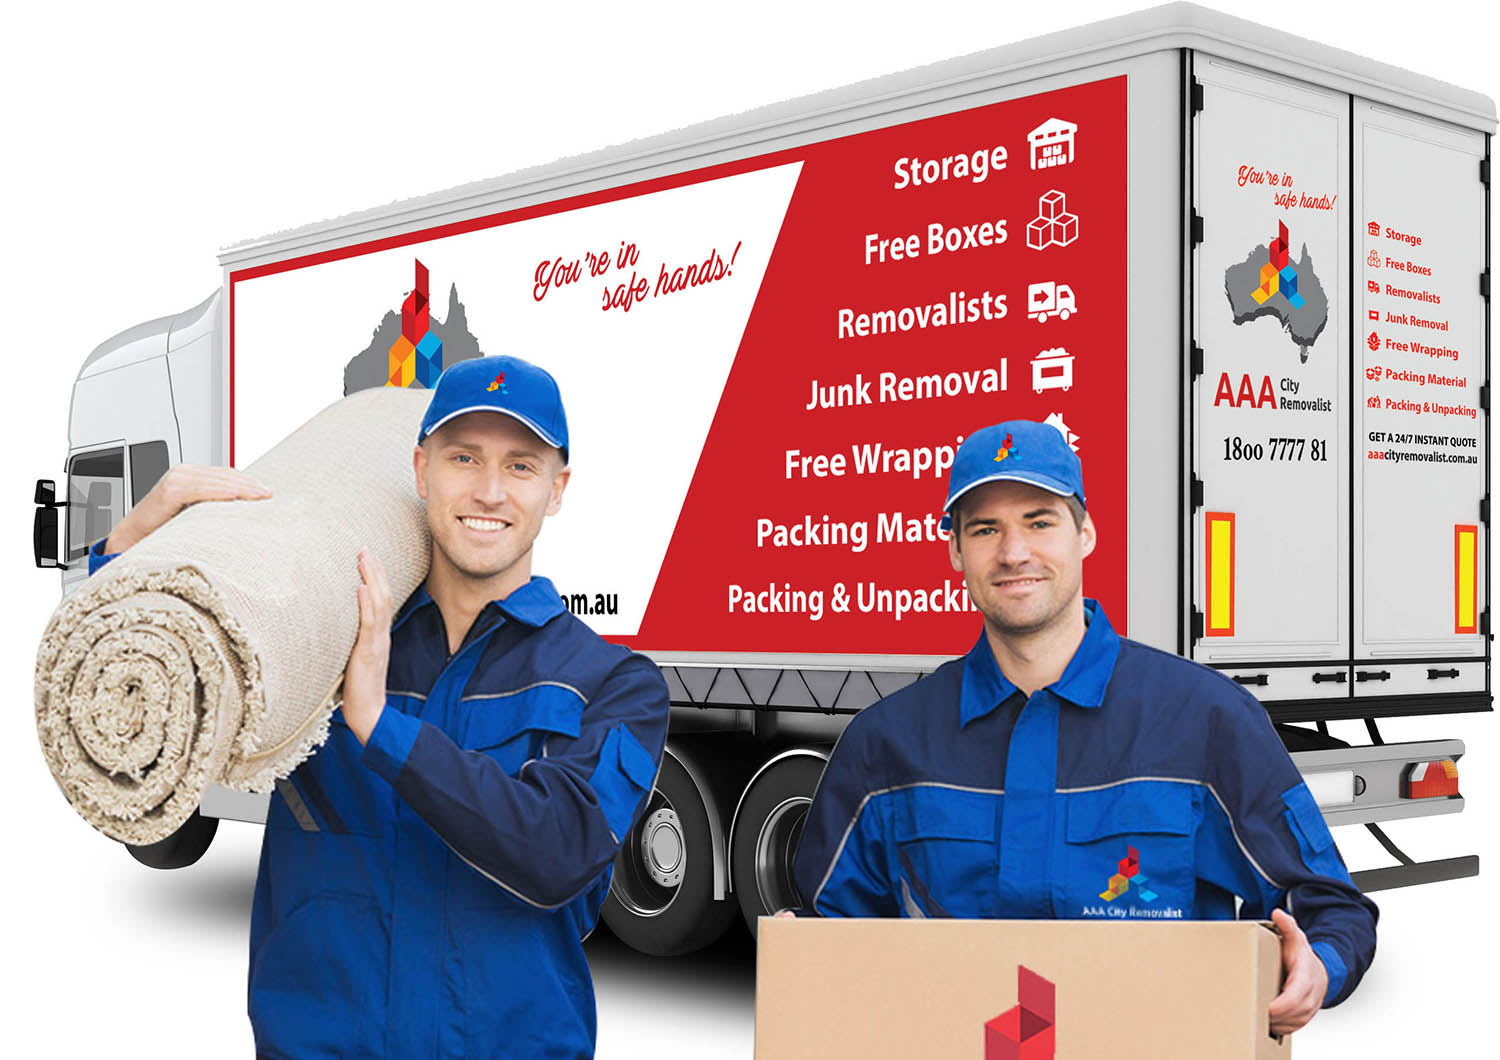 Removalists Sydney - 2 men and a truck